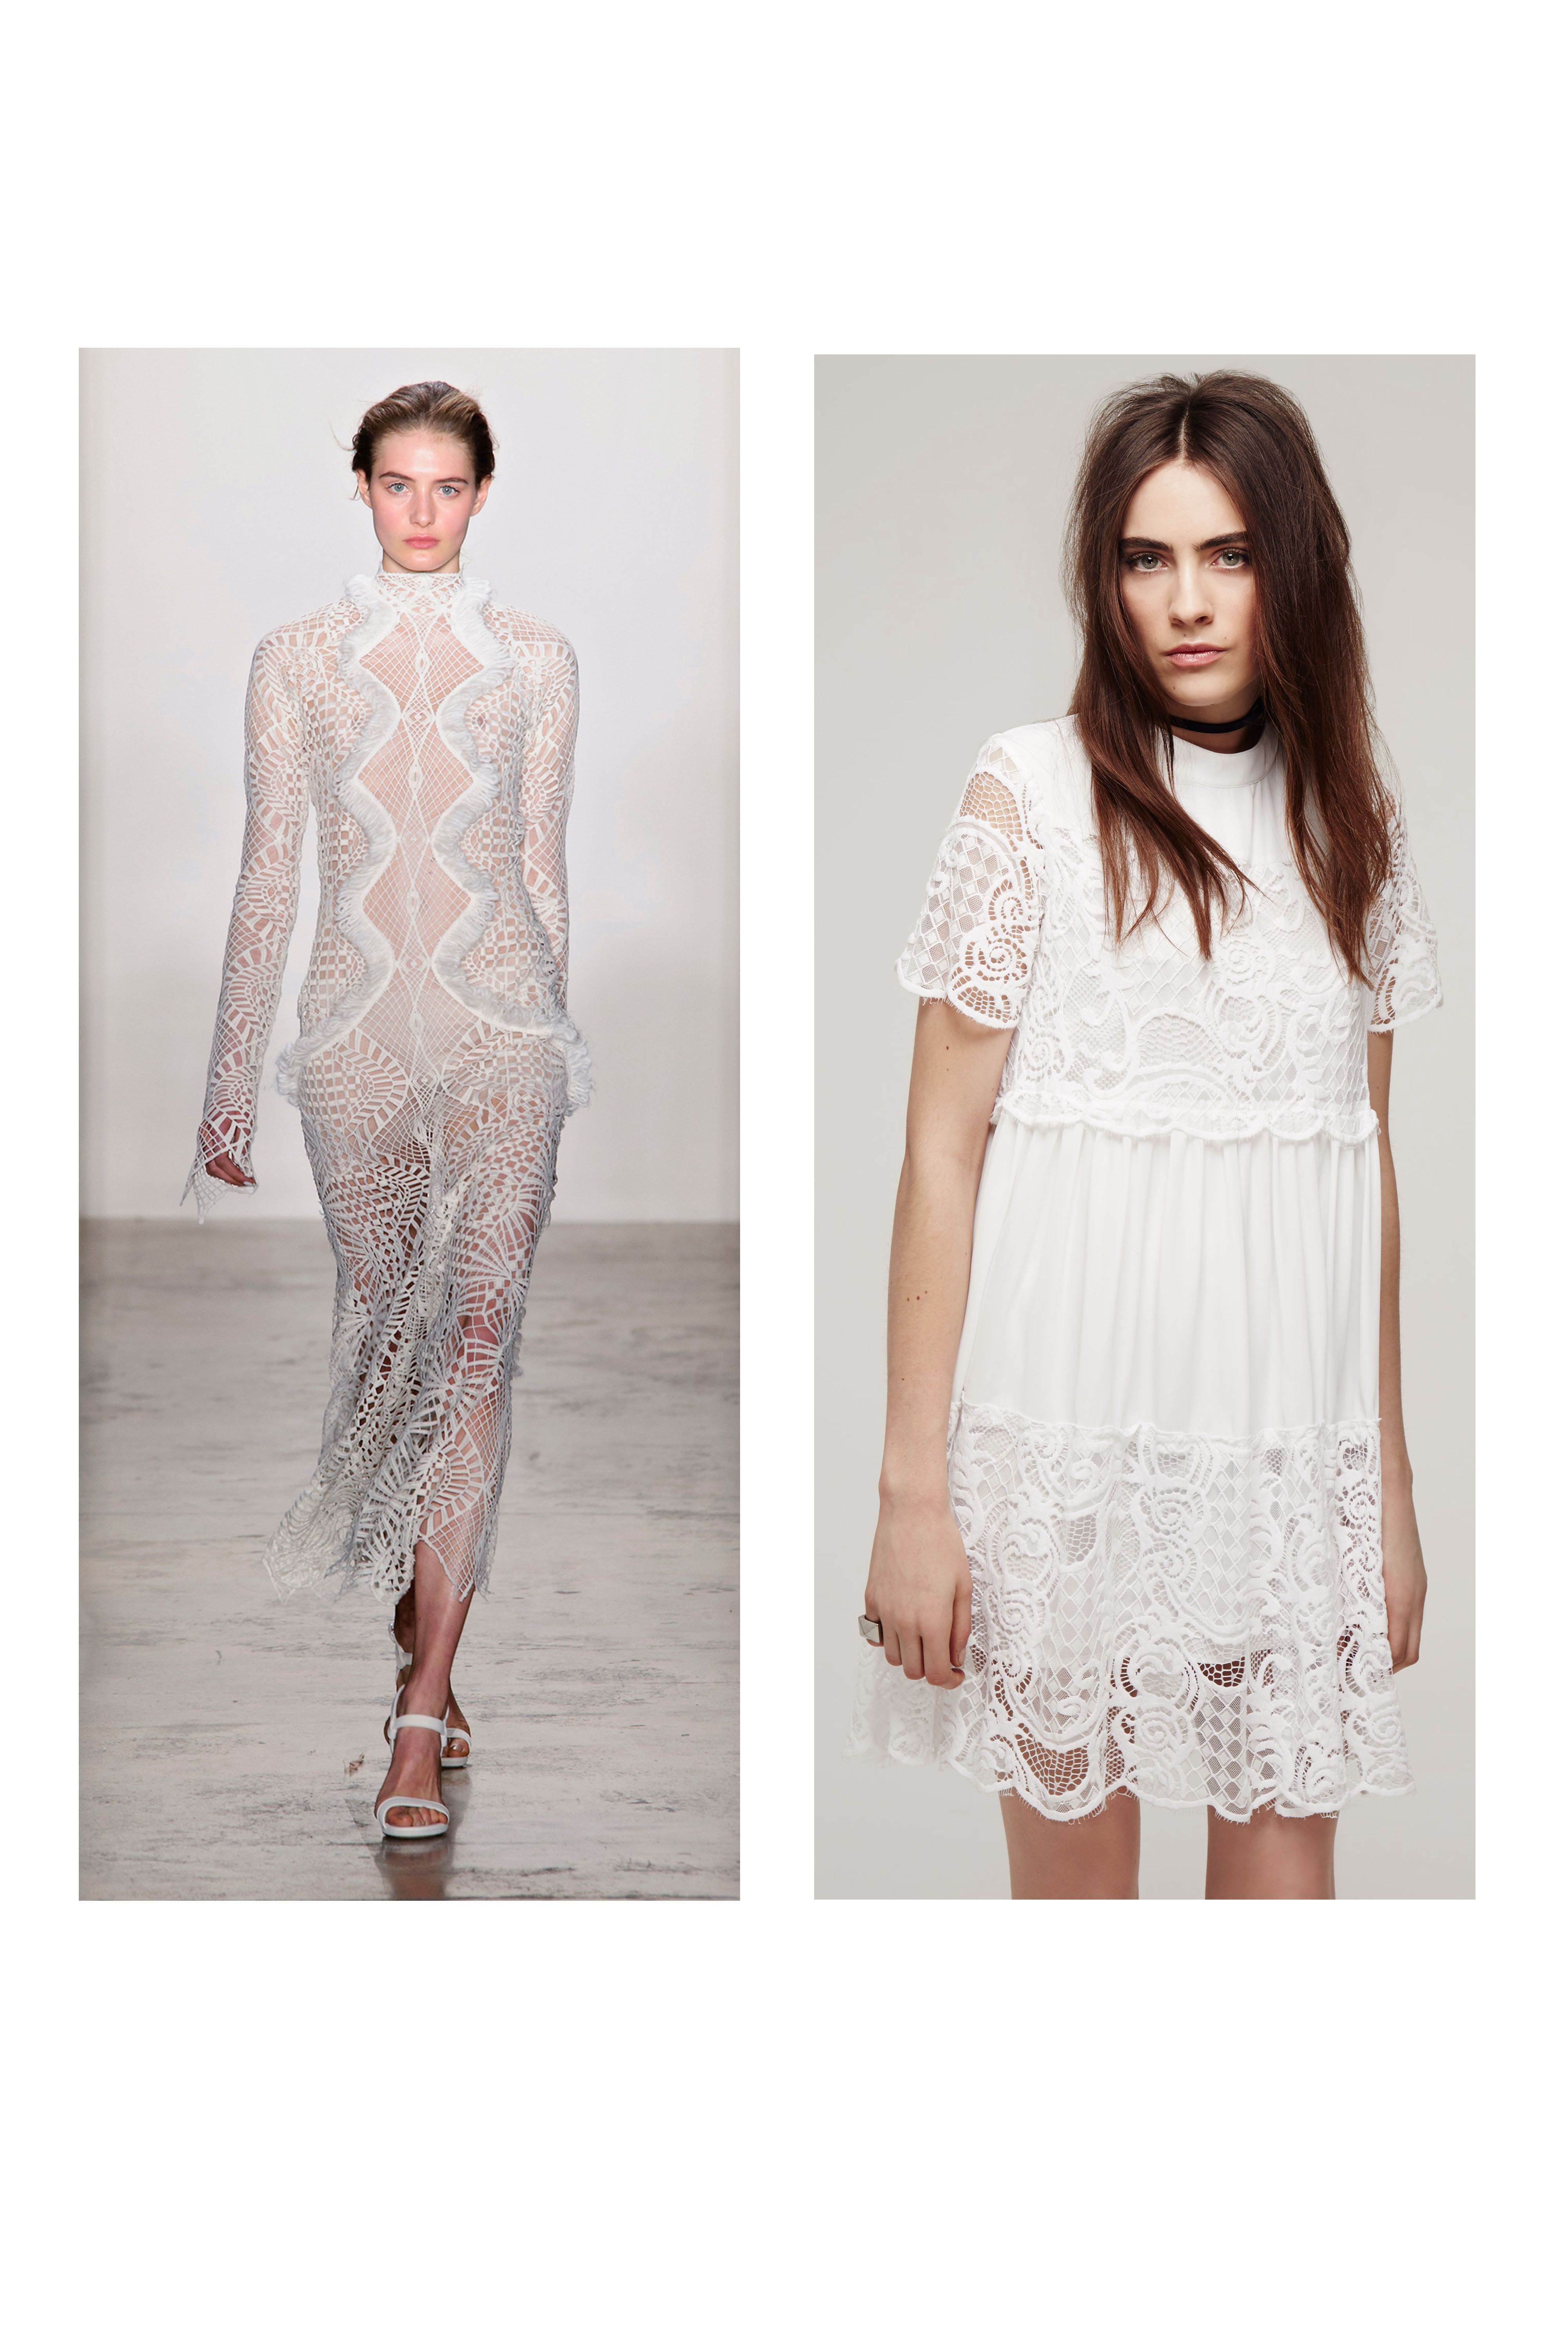 "<p><strong><strong><u>The Trend</u>:</strong> </strong>Romance is in the air! Frothy lace details are turning up here, there, and everywhere on the catwalks. Whether you're channeling a nouveau Victorian vibe or going for boho, a short and sweet lace dress will be your go-to now through the holidays.</p><p><strong><u><br></u></strong></p><p><strong><u>The Styling Tip</u>:</strong> When temps drop, simply slip on a biker jacket and black tights. Leather + lace = failproof chic.<br></p><p><br></p><p><strong><u>The Look</u></strong>: Jonathan Simkhai Fall 2016 (<em>left</em><span class=""redactor-invisible-space"" style=""line-height: 1.6em; background-color: initial;"">); KENDALL + KYLIE Lace Detail Babydoll Dress, $178, <a href=""http://shop.nordstrom.com/c/all-kendall-and-kylie?&cm_mmc=Mindshare_Nordstrom-_-MayWAP-_-Hearst-_-proactive"" target=""_blank"">nordstrom.com</a>; choker and rings, <em>stylist's own</em></span><br></p>"